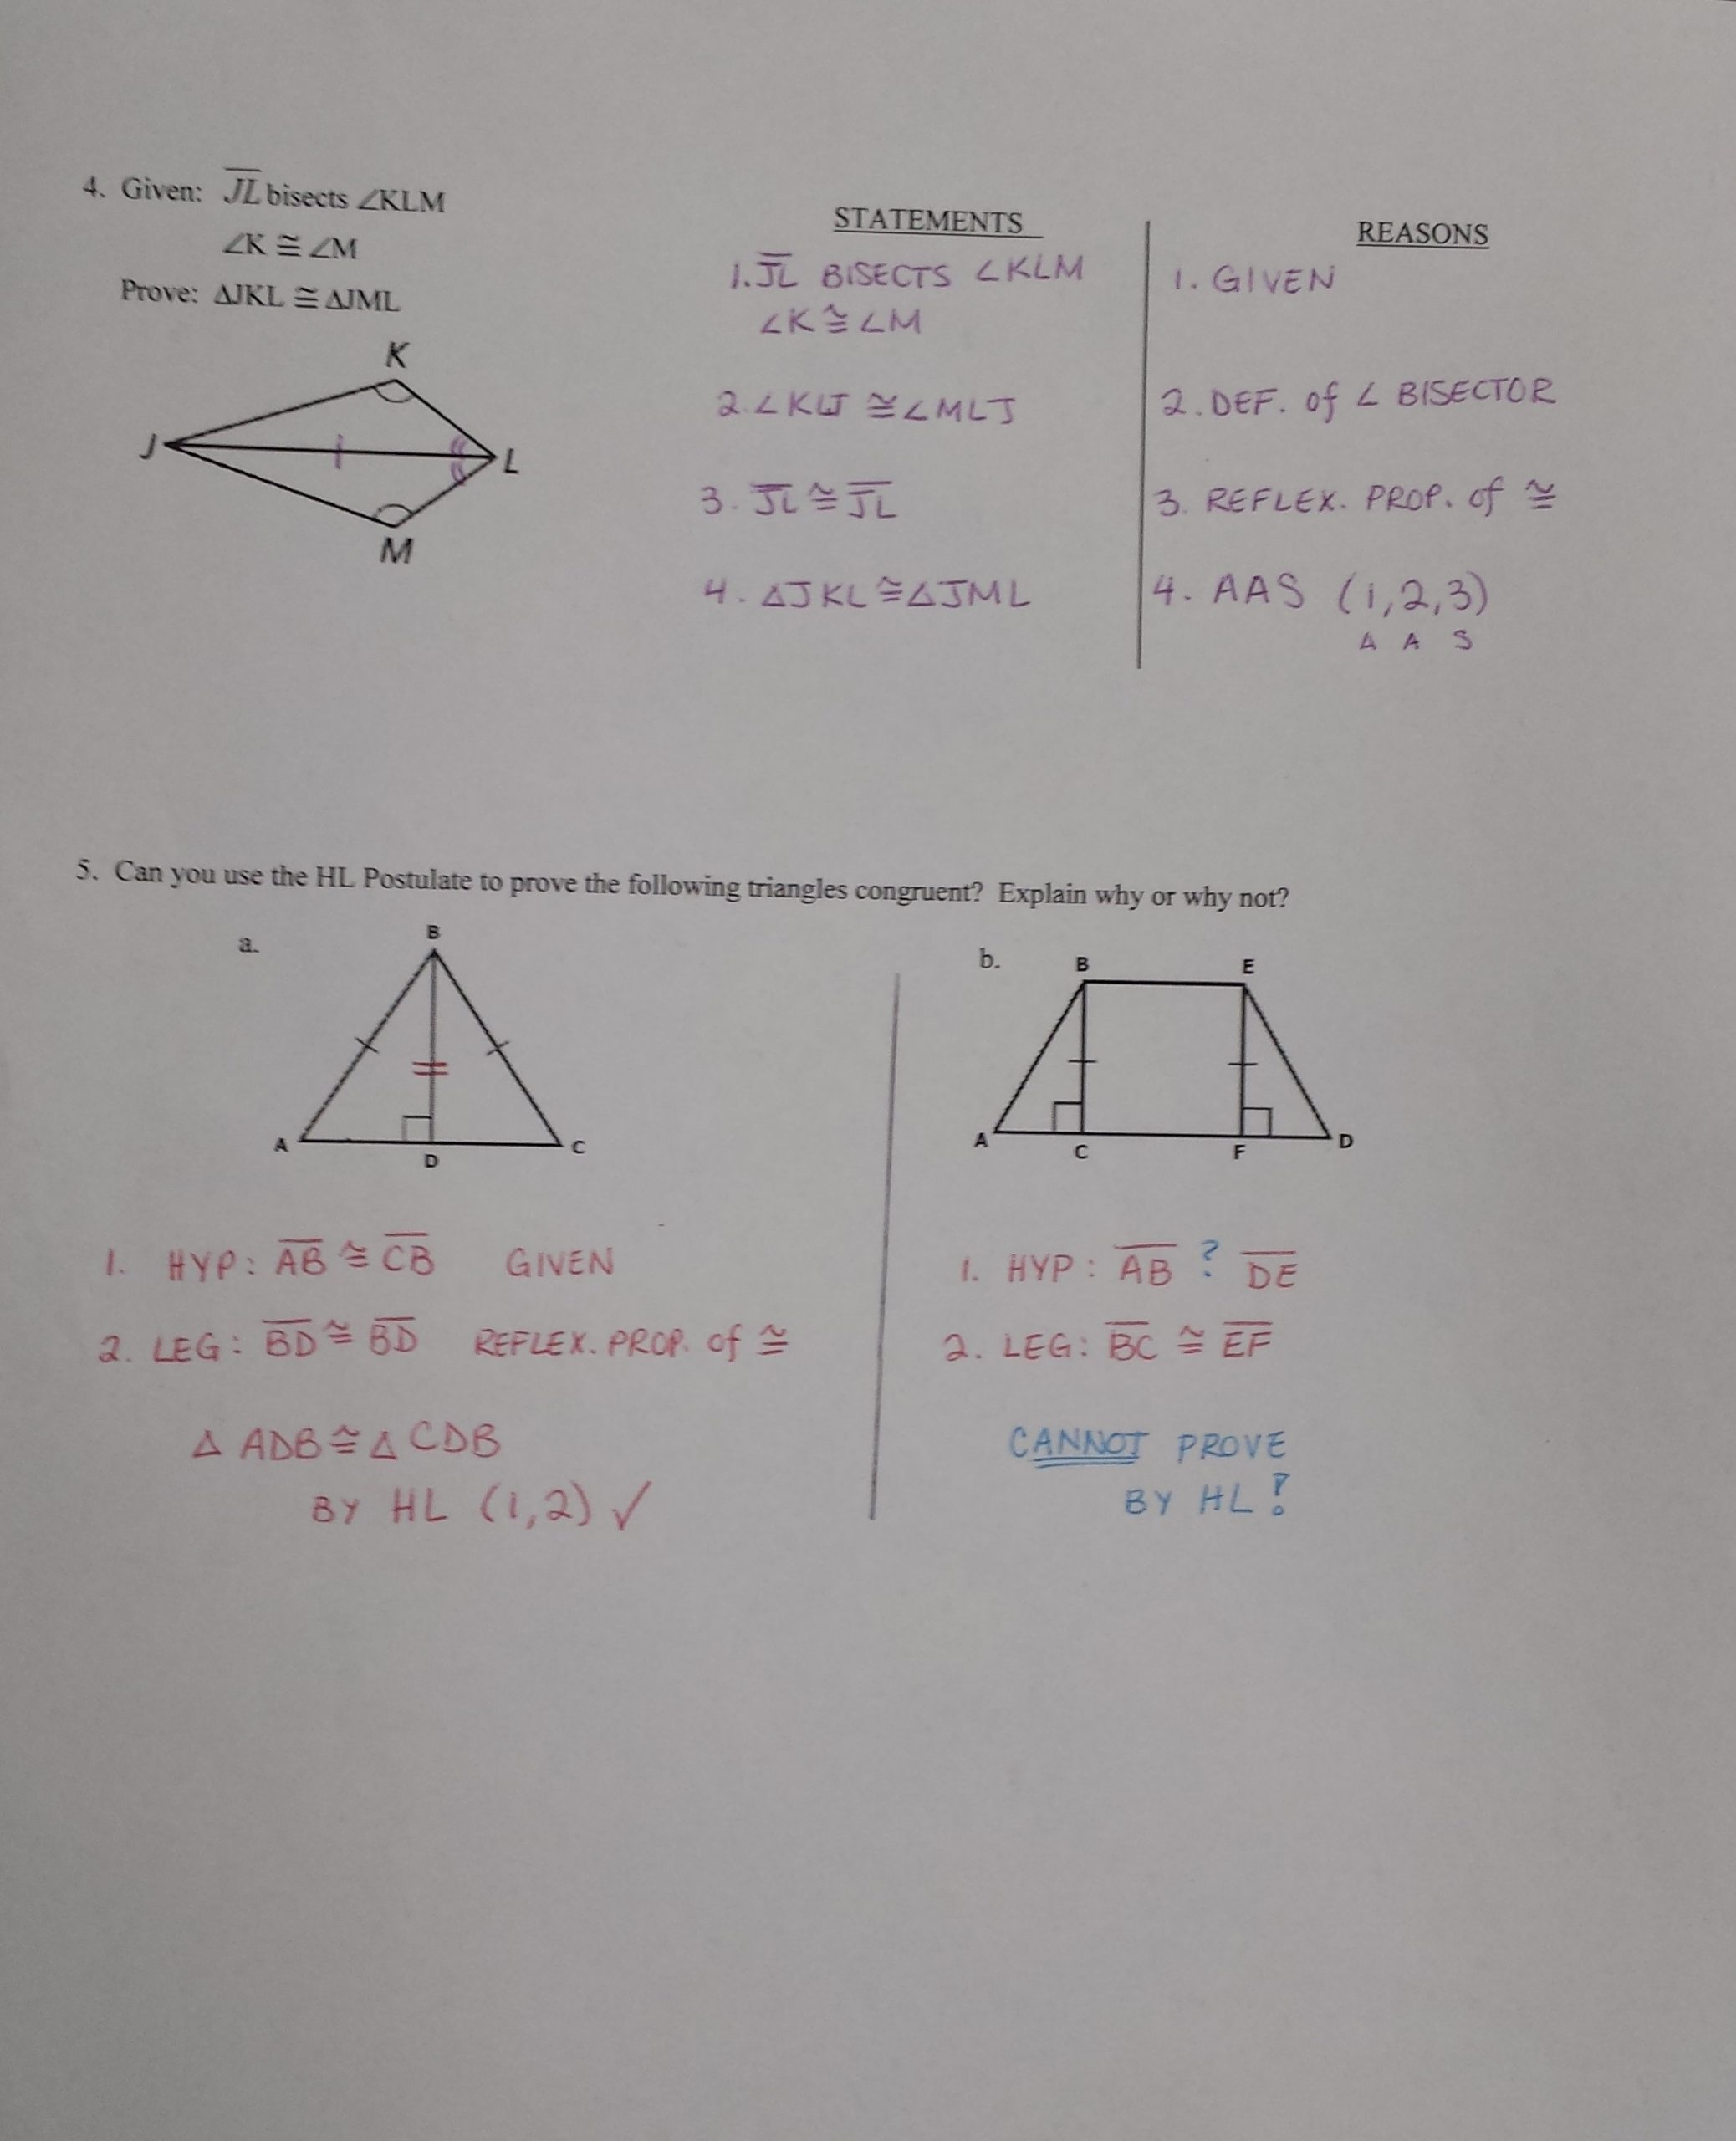 Proving Triangles Congruent Worksheet Hl Triangle Congruence Worksheet